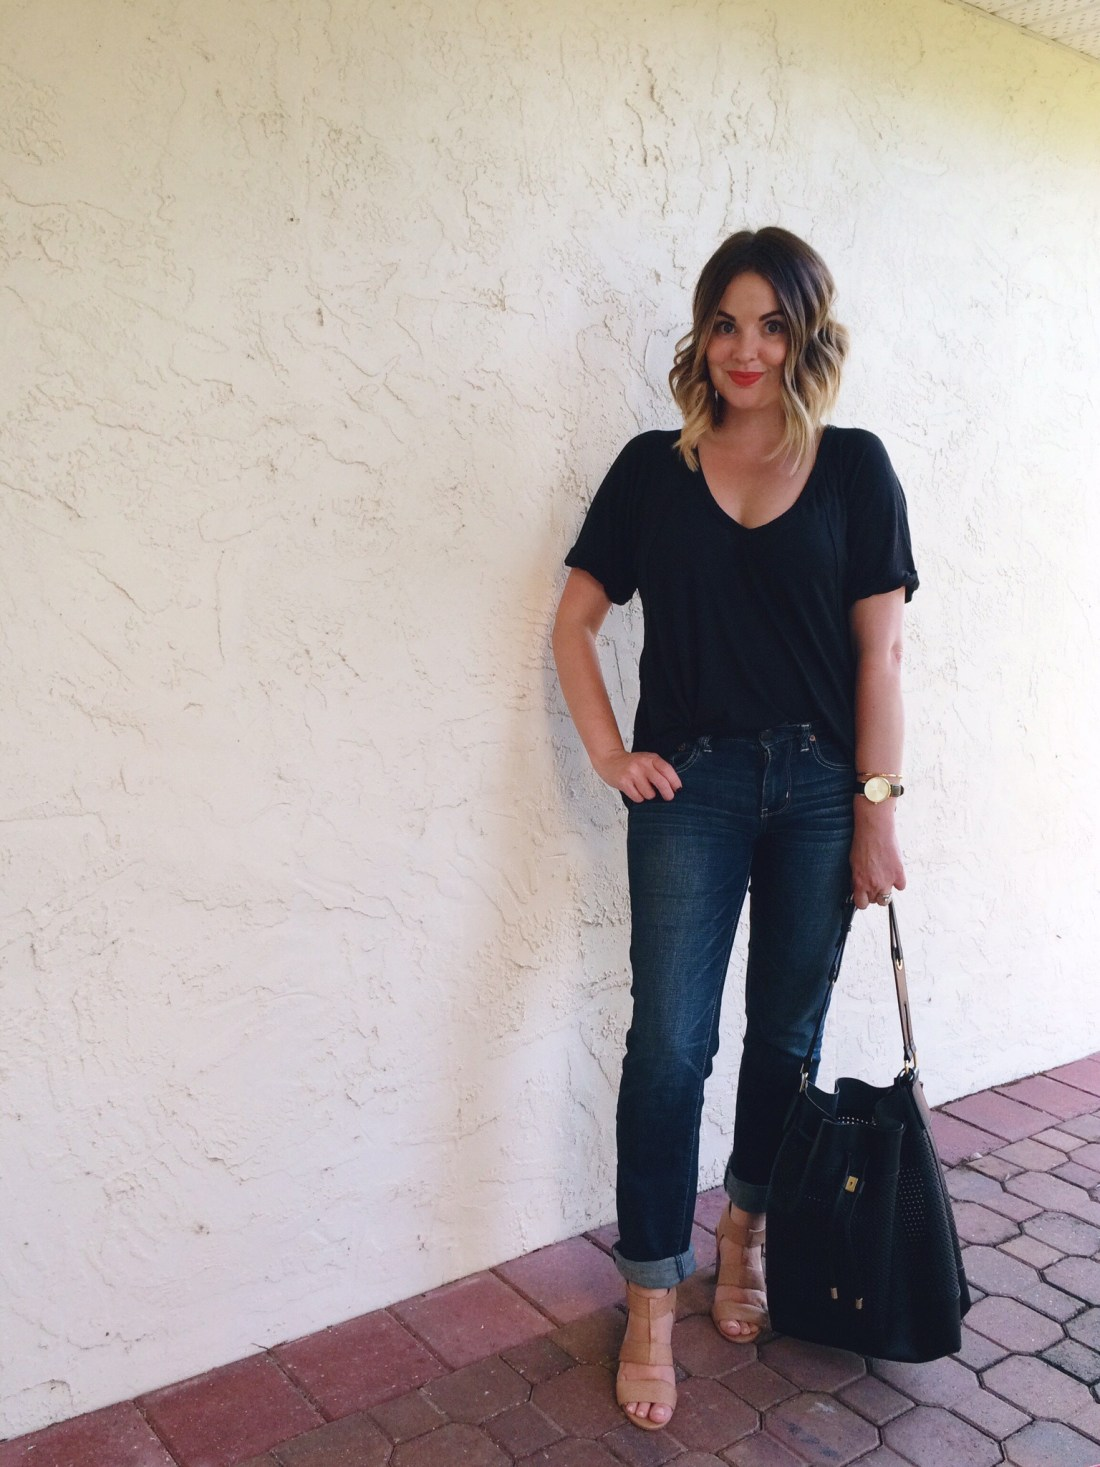 Girlfriend Jeans, Casual Outfit Ideas, Free People Free Fallin' Tee, Style Blogger, 30s Style